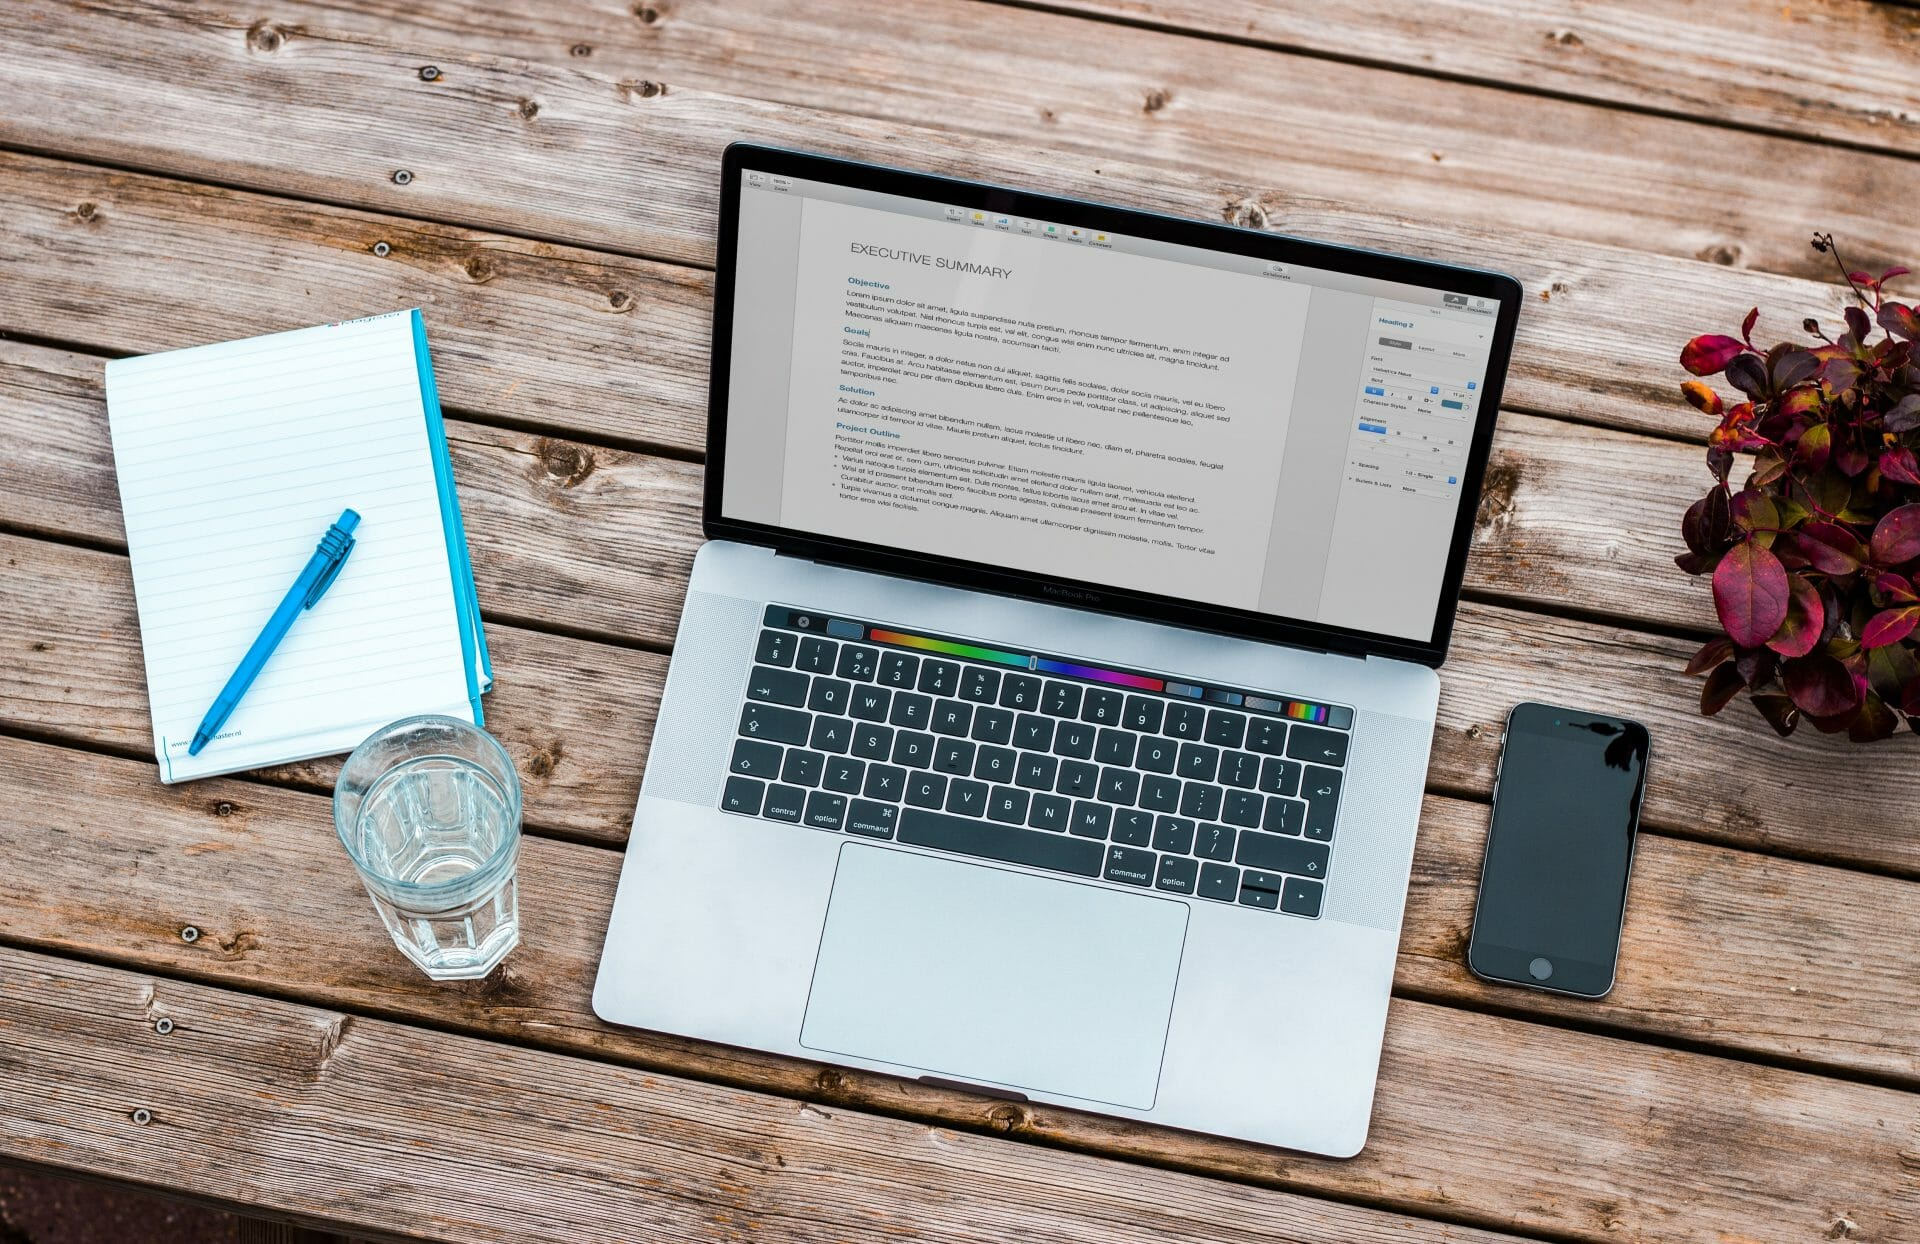 Picture of laptop and water on desk Real Estate News for Investors Podcast Episode #769